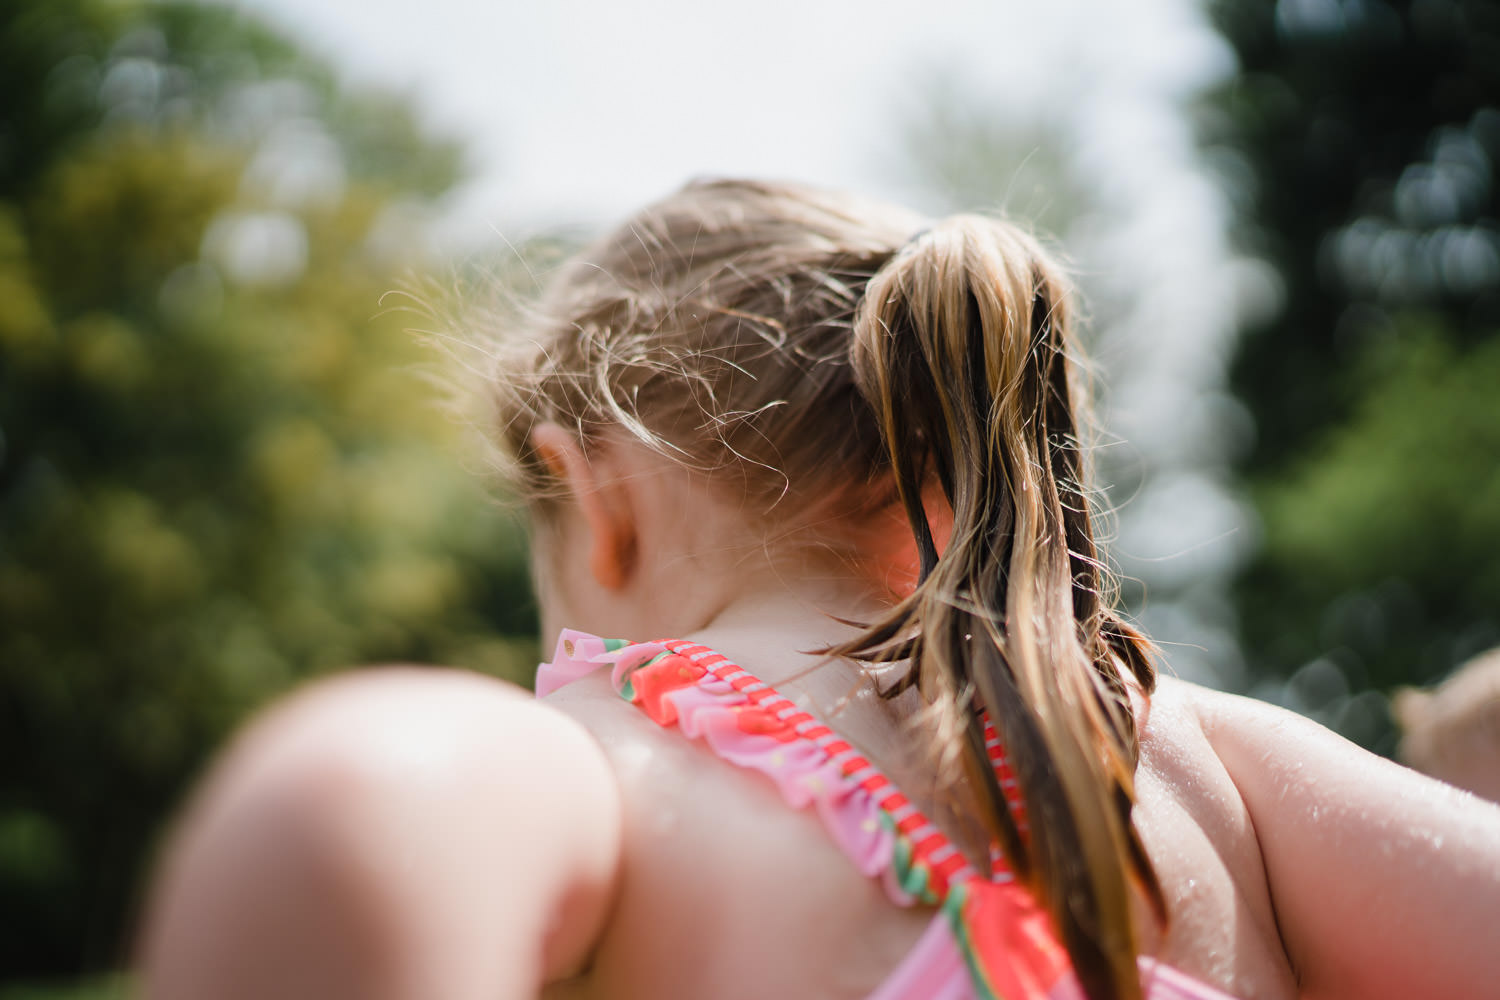 A little girl's wet ponytail.